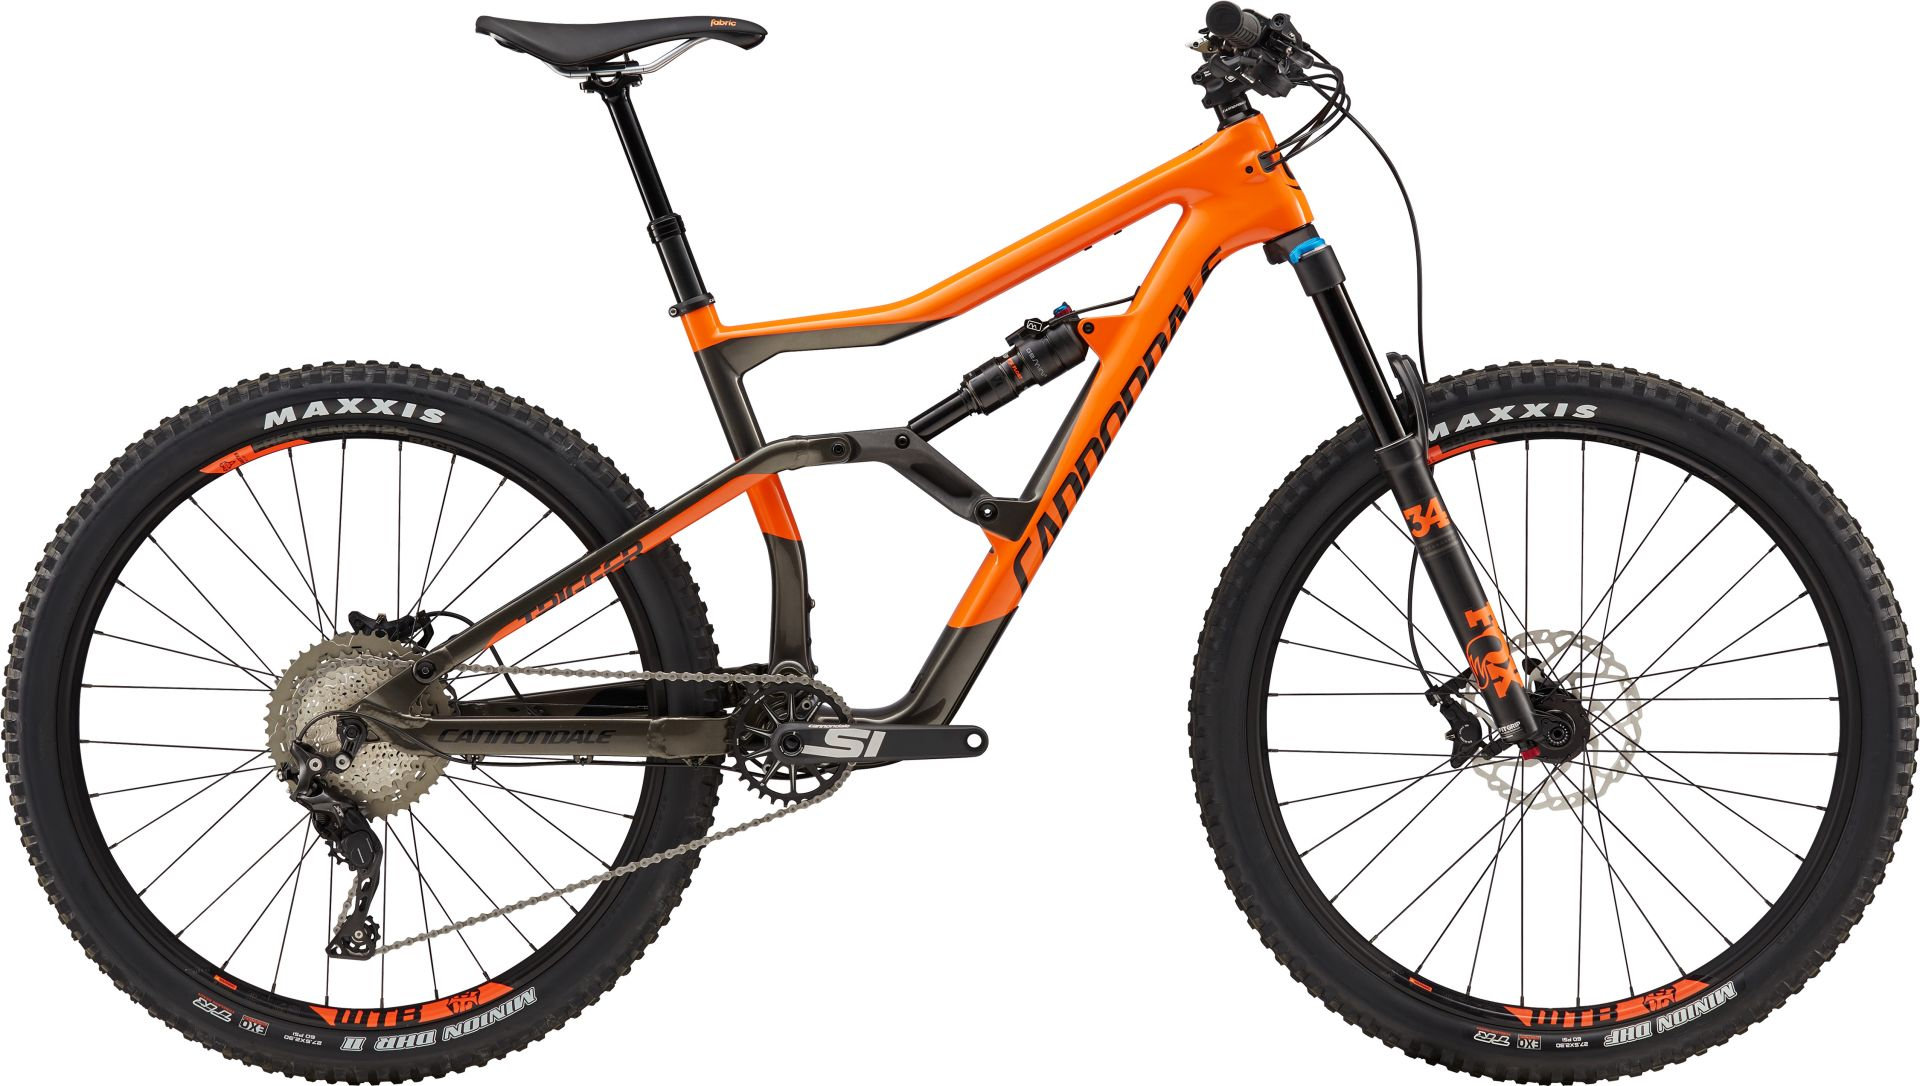 VTT Cannondale Trigger Carbon 3 Orange/Noir - M